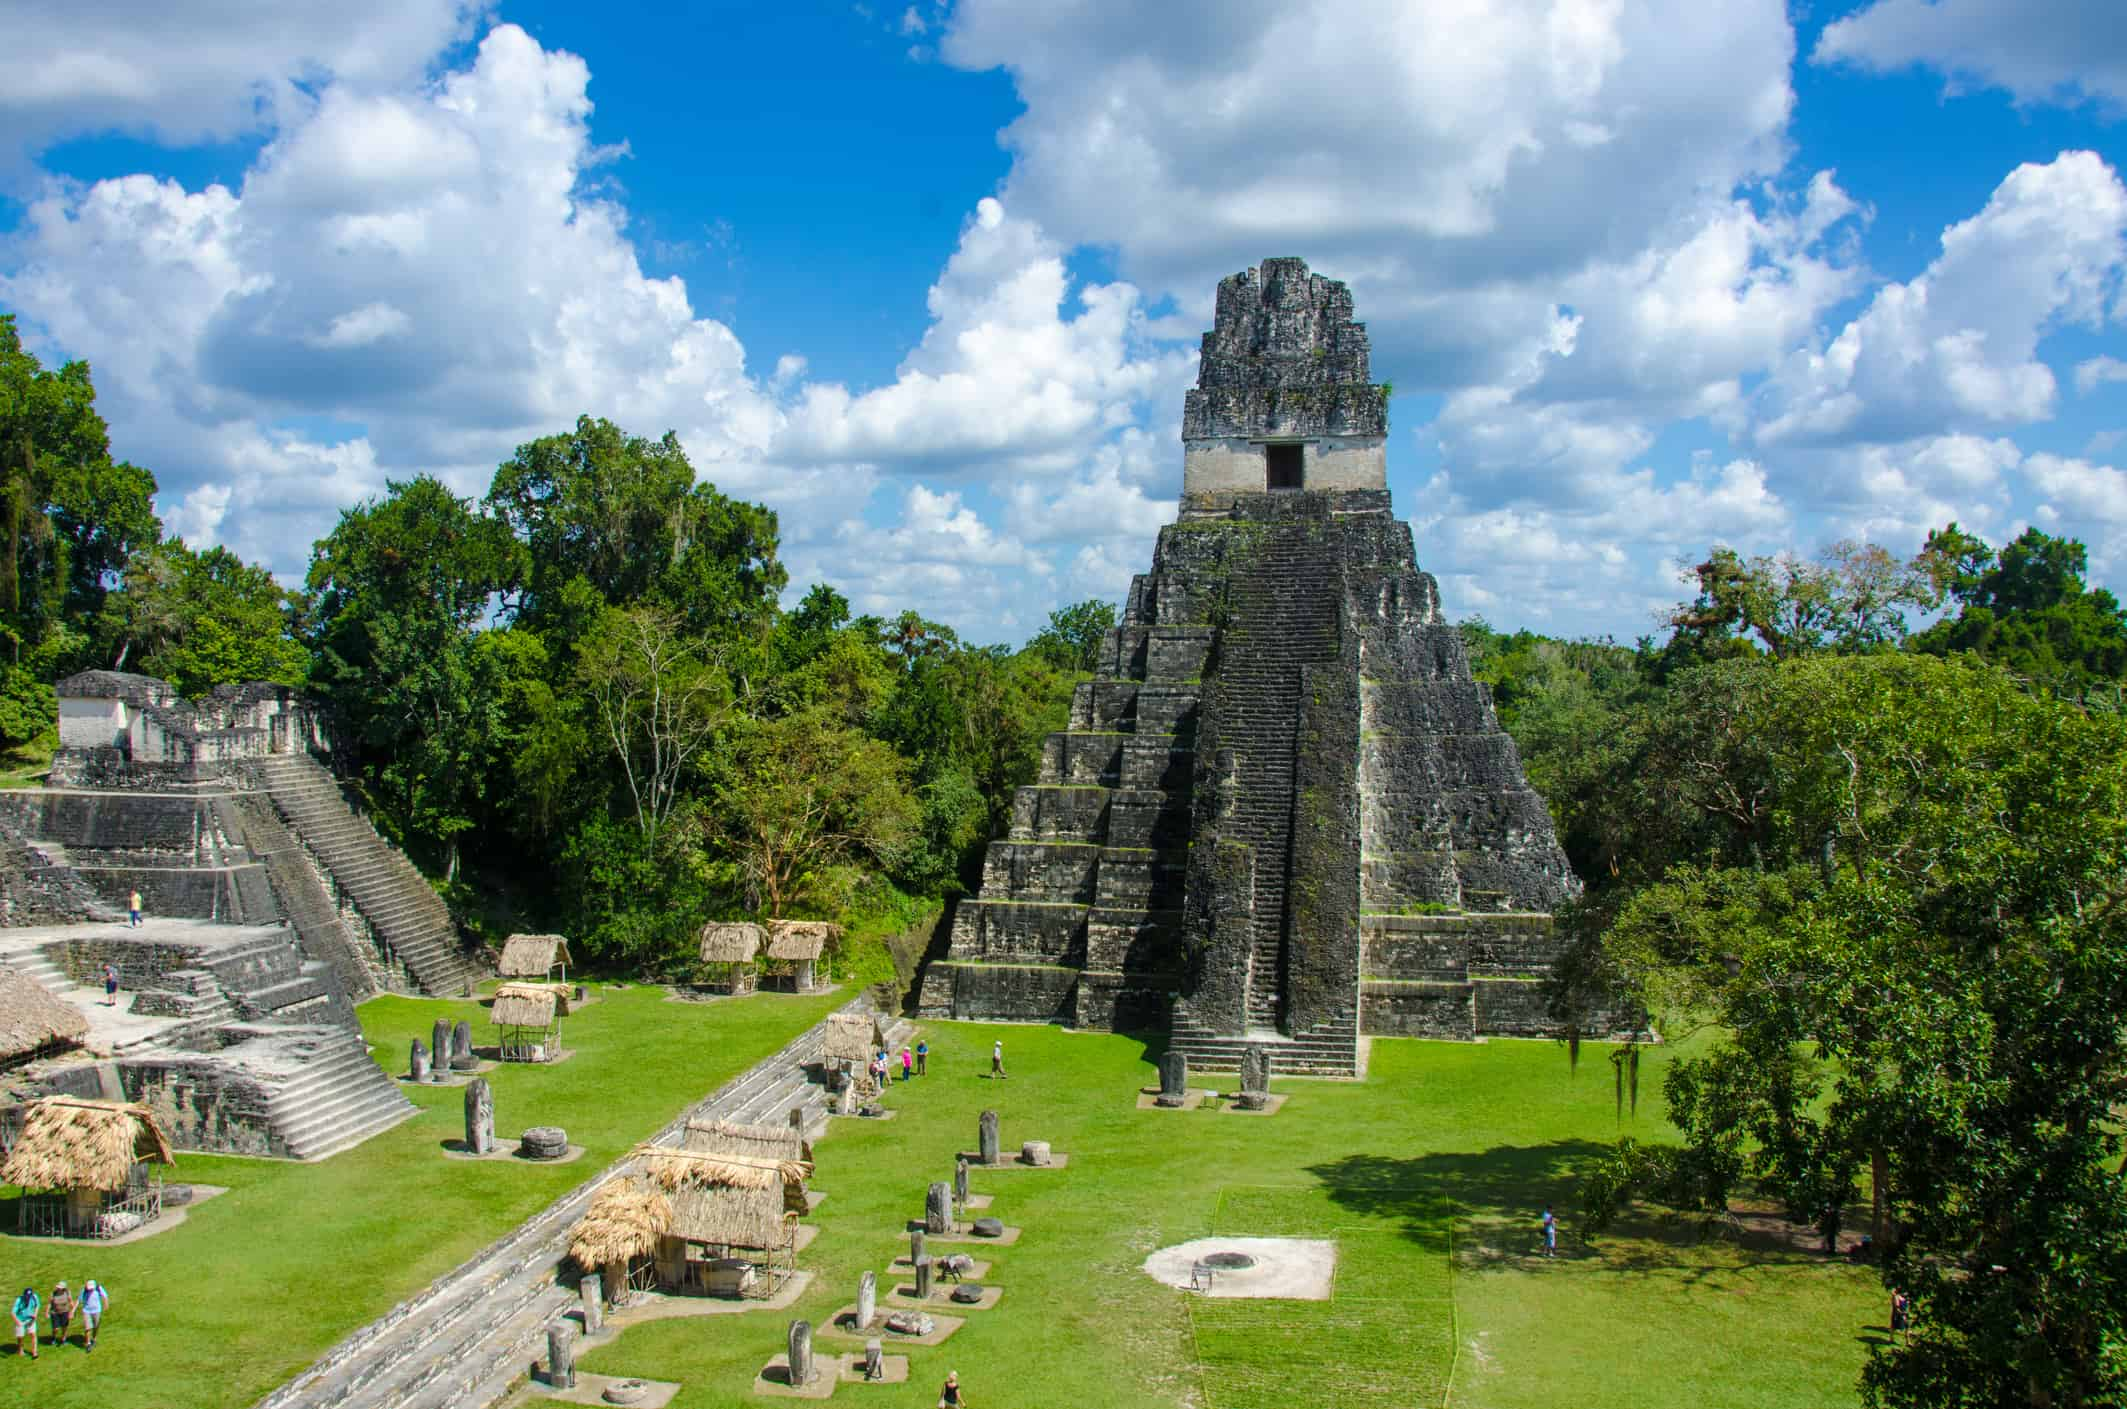 The ruins of Tikal in Guatemala